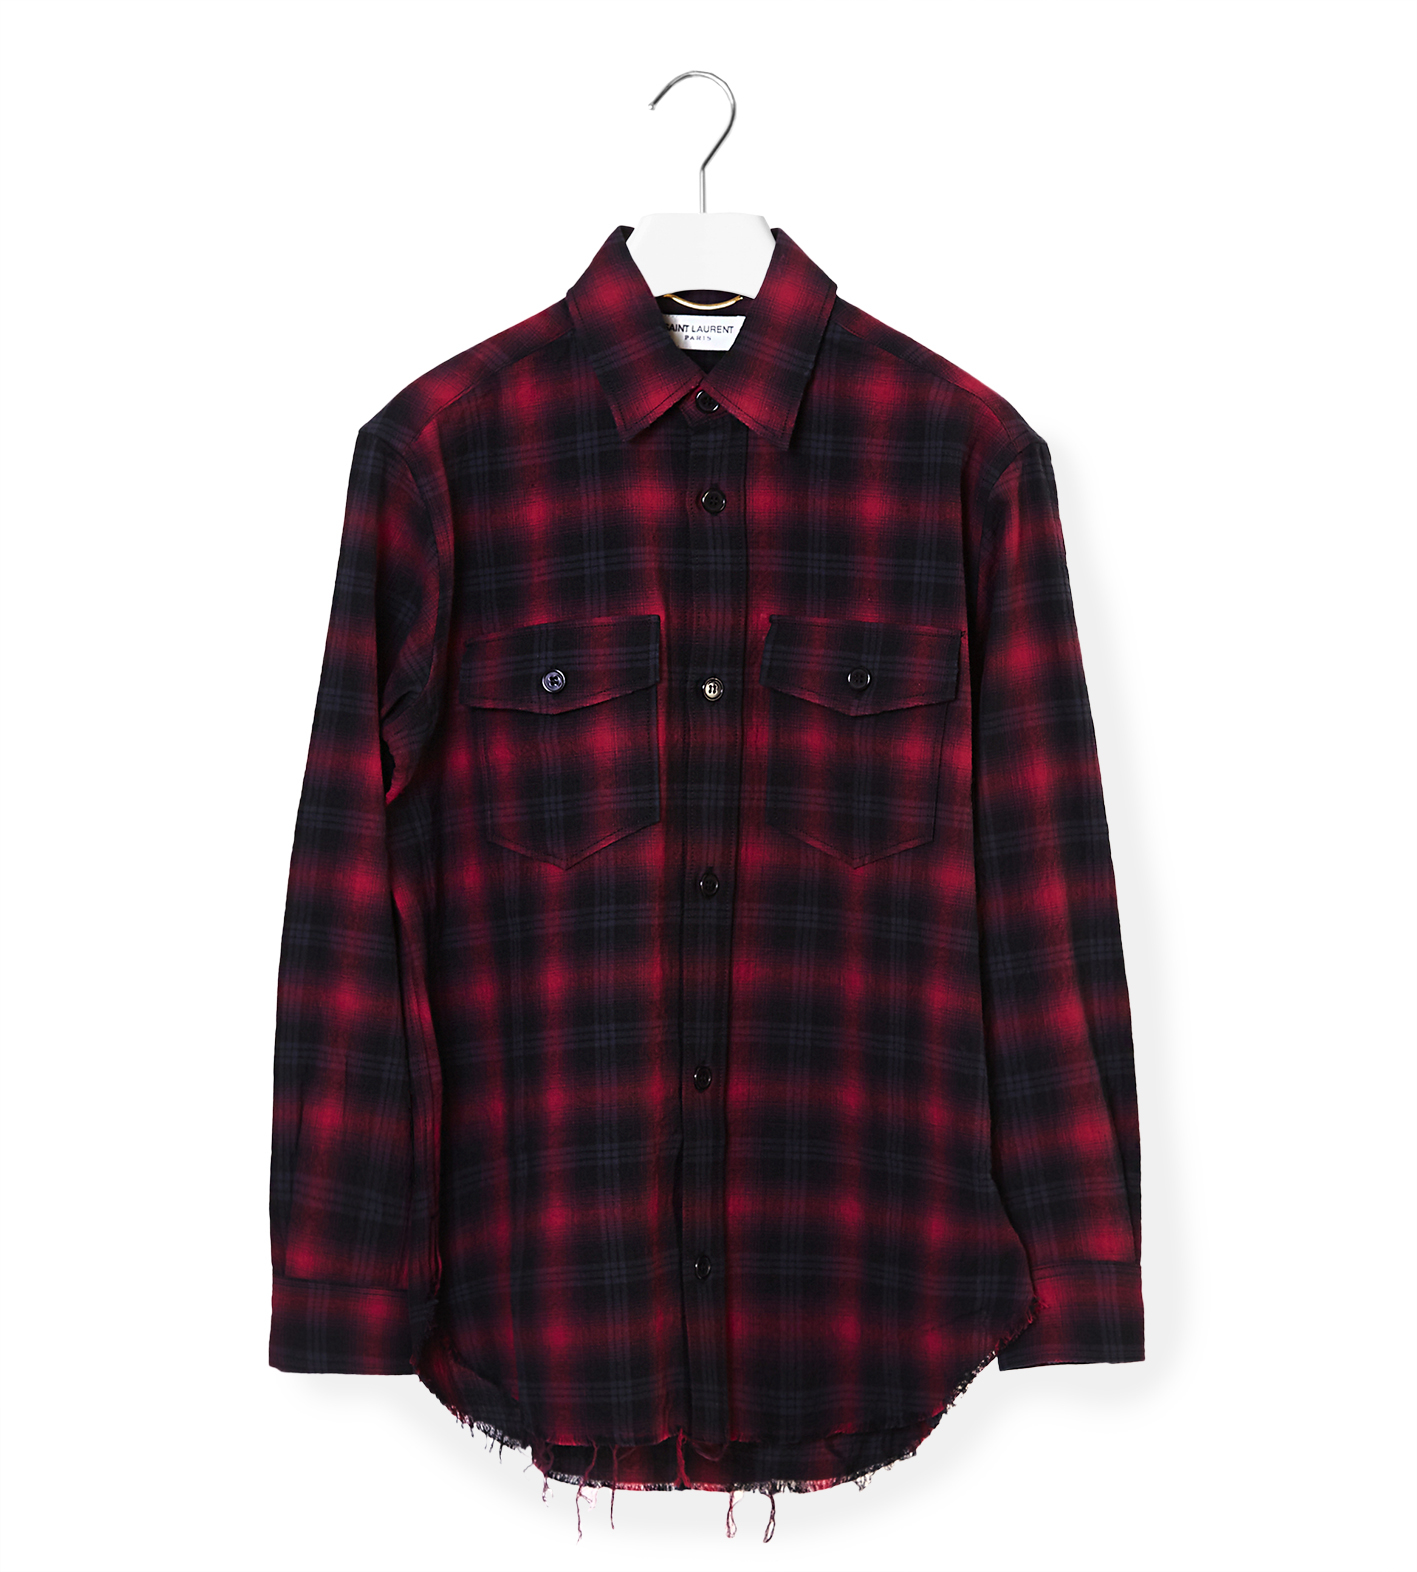 Saint laurent check shirt in black lyst for Saint laurent check shirt